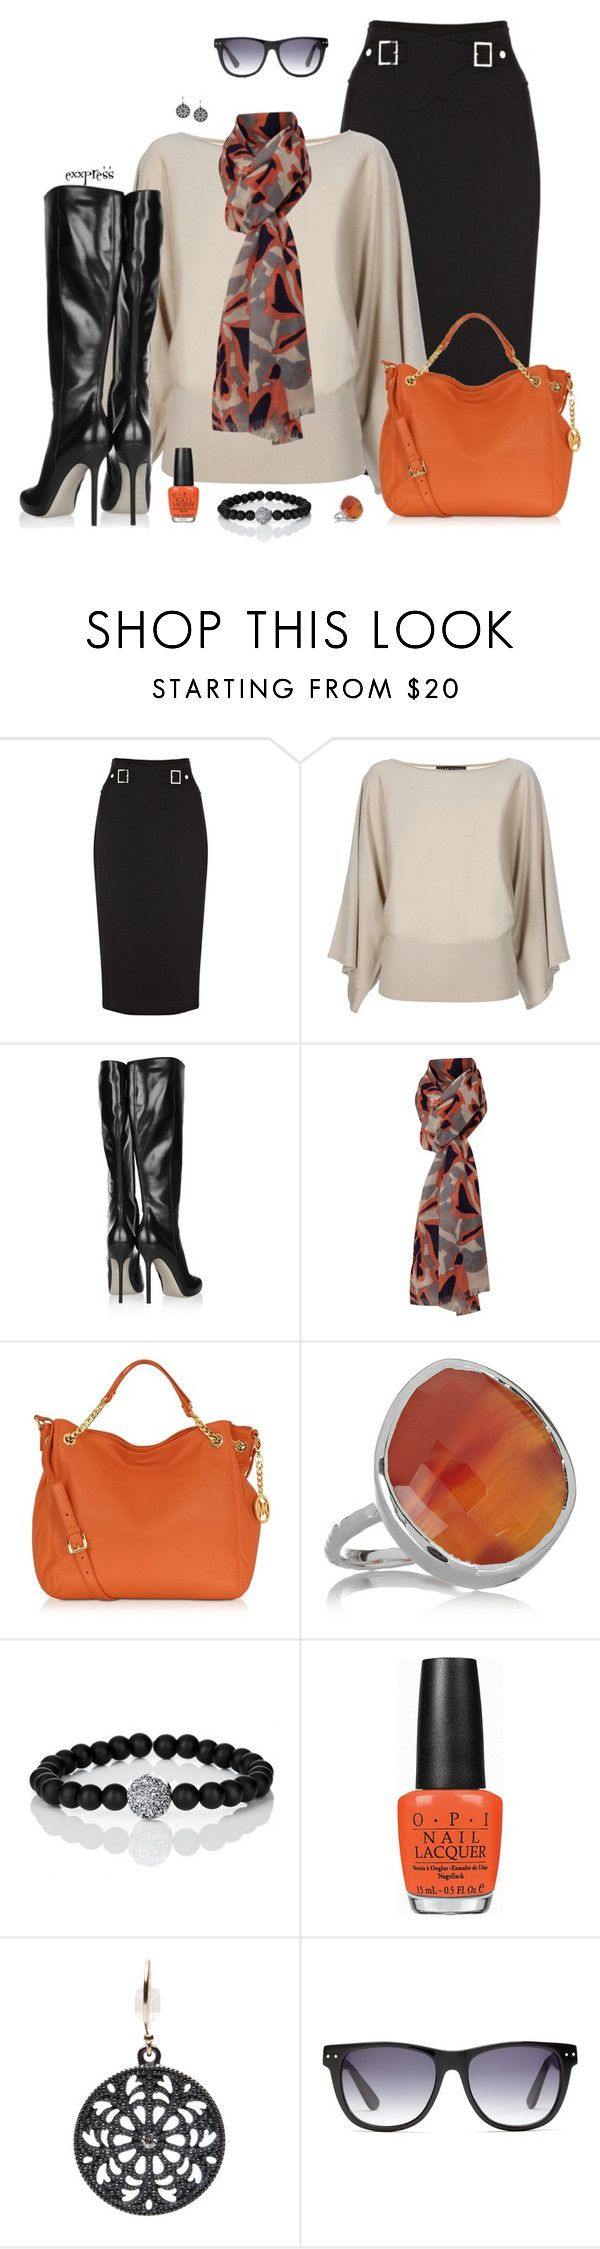 """It's not Halloween"" by exxpress ❤ liked on Polyvore featuring Karen Millen, Ralph Lauren Black Label, Sergio Rossi, Lola Rose, Michael Kors, Monica Vinader, Lola James Jewelry, OPI, mizuki and Madewell"